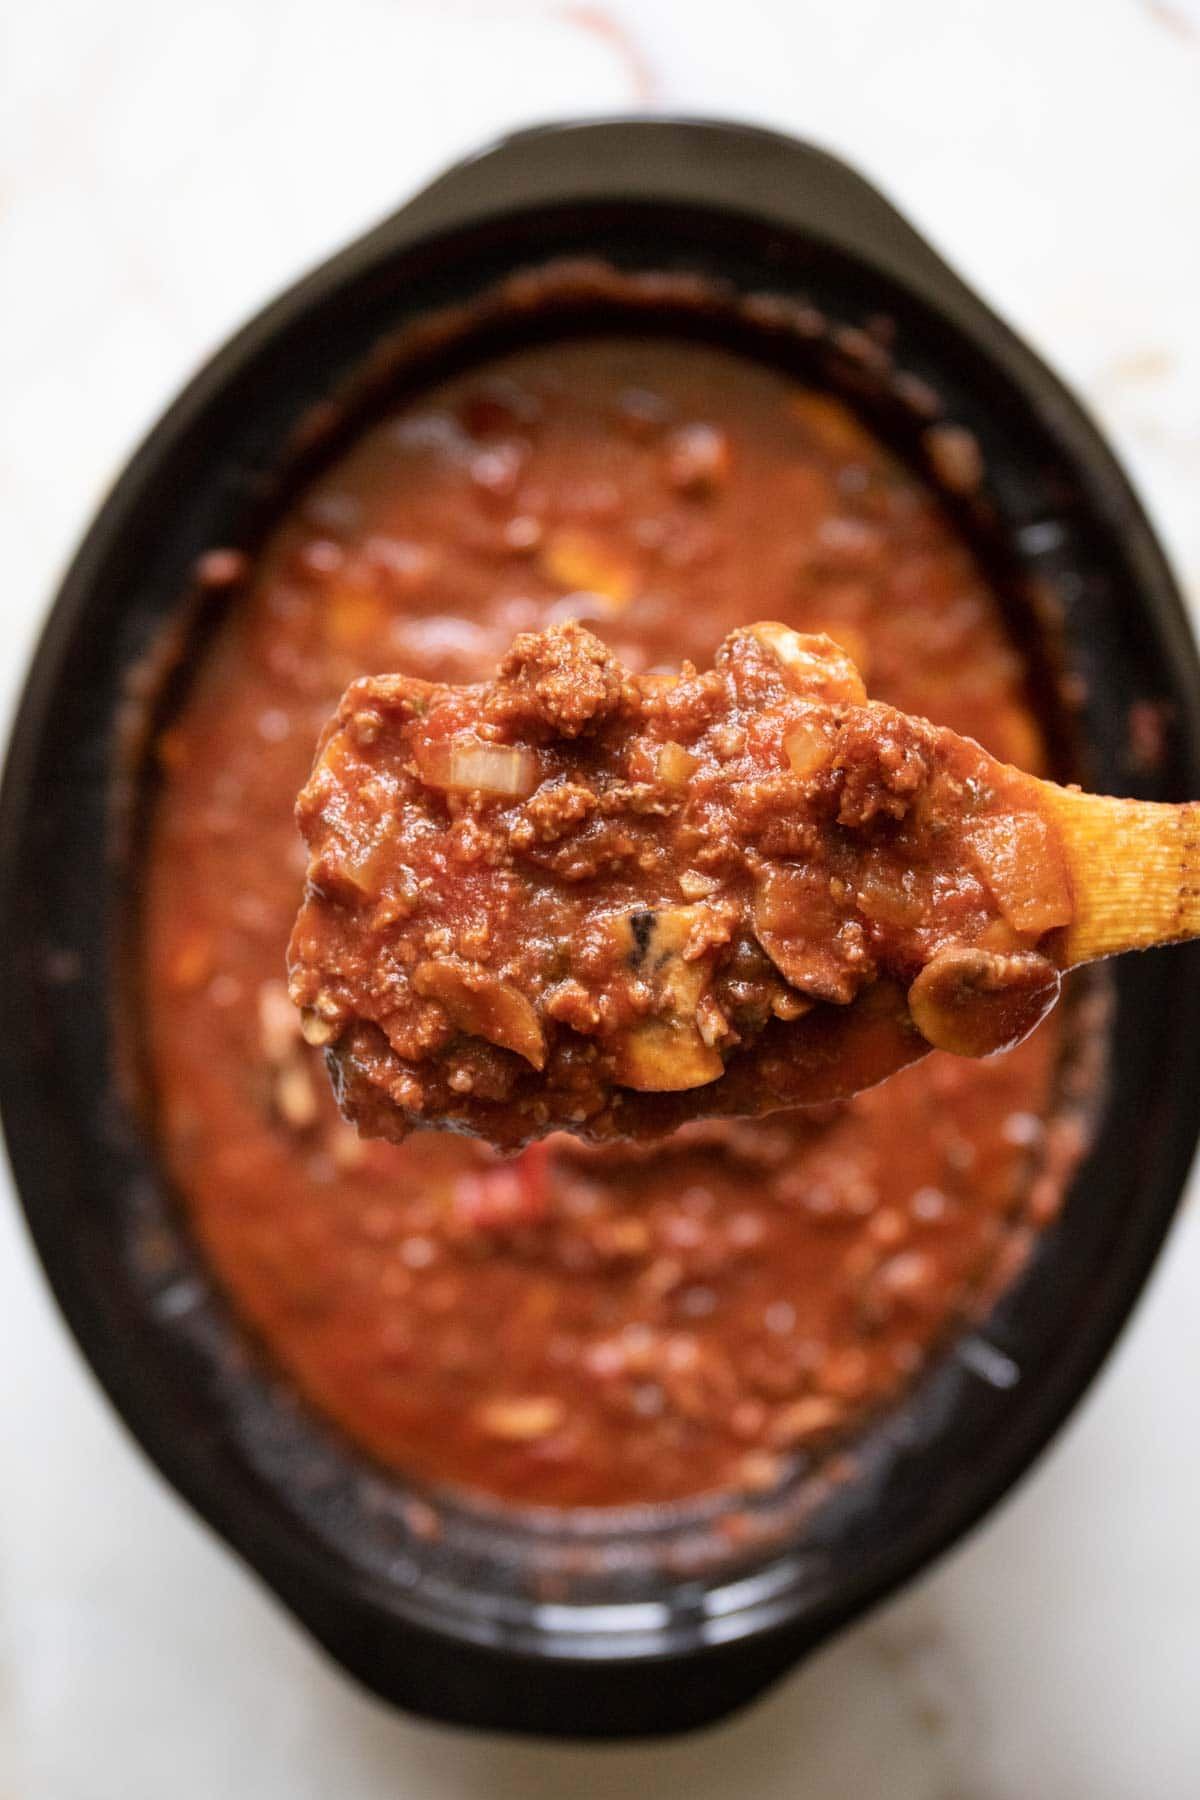 close up view of the texture of the meat tomato sauce